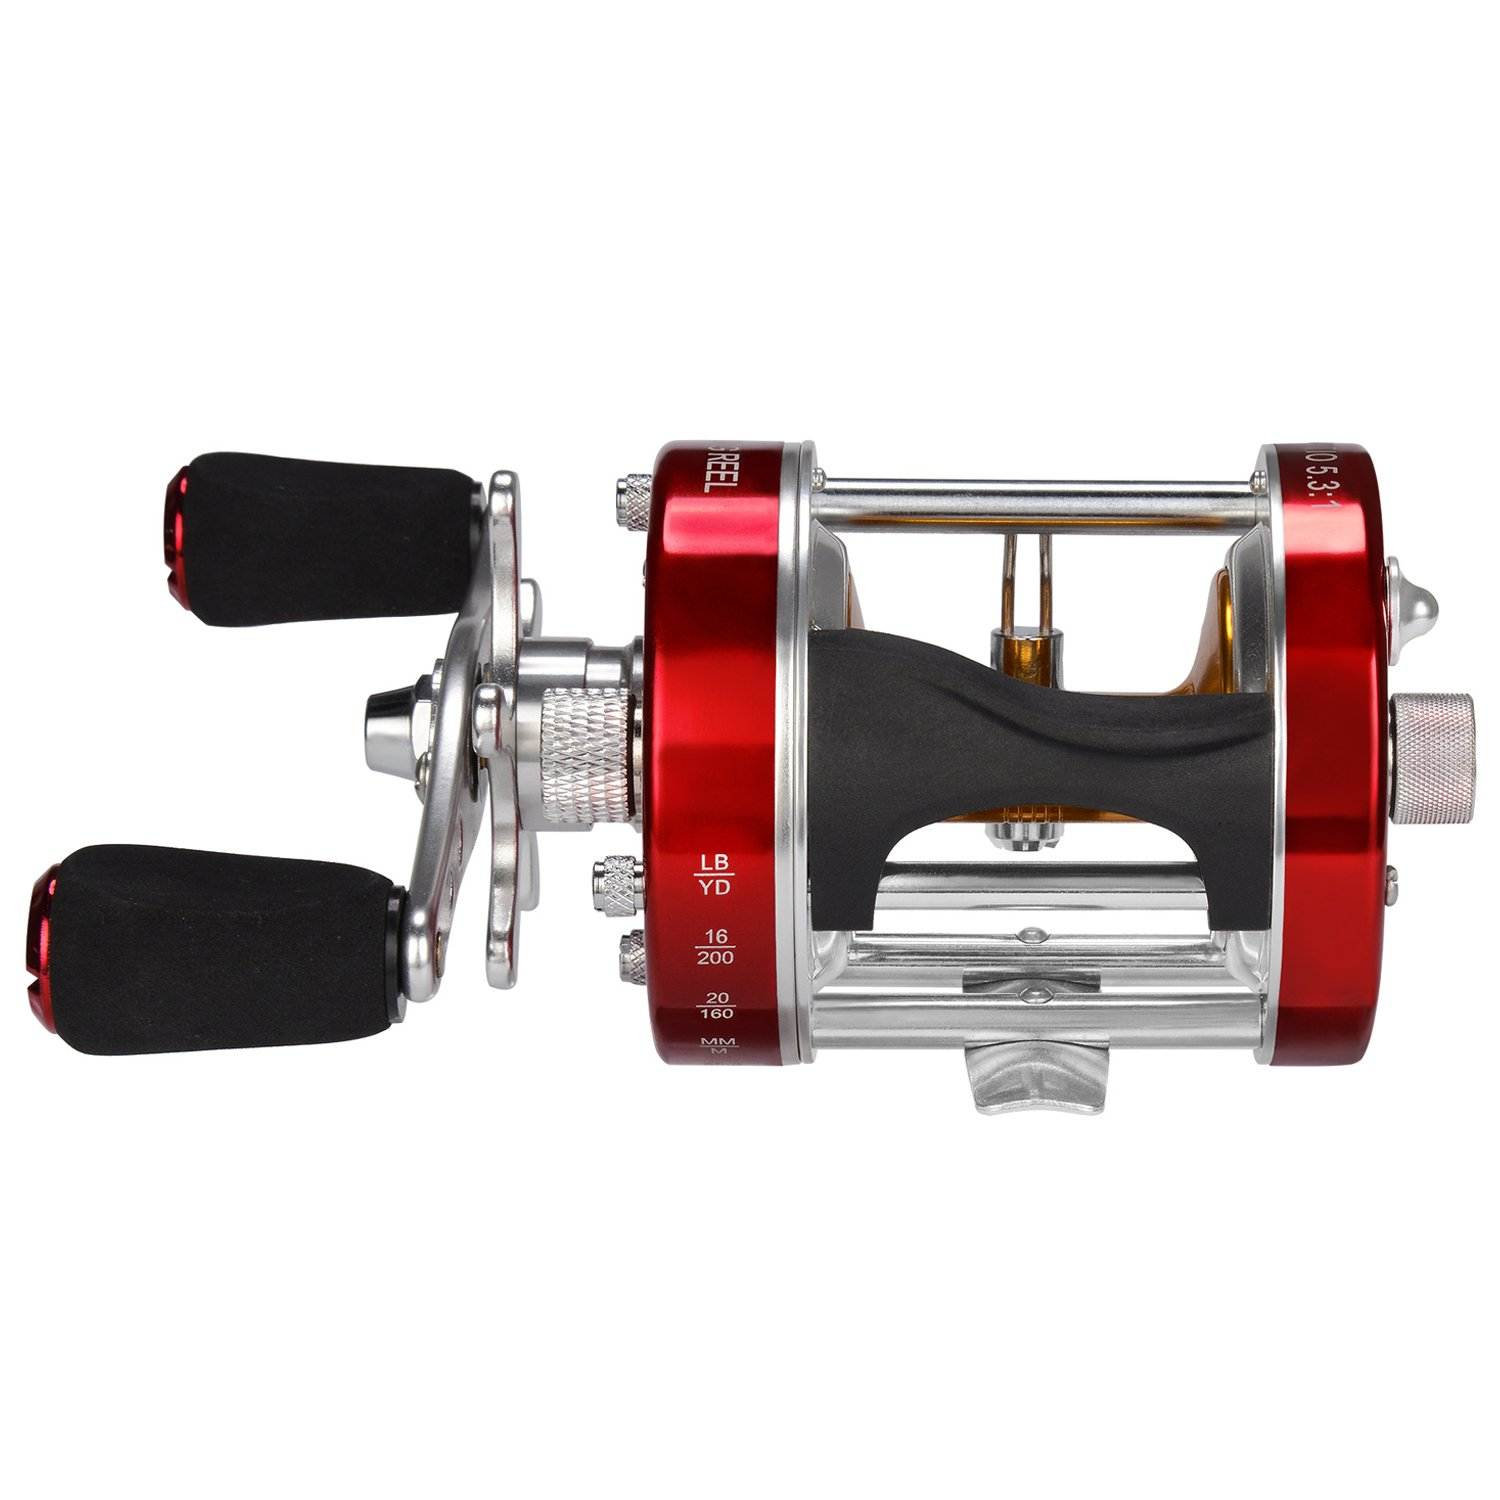 KastKing Rover Round Baitcasting Reel - No. 1 Rated Conventional Reel - Carbon Fiber Star Drag - Reinforced Metal Body by KastKing (Image #2)